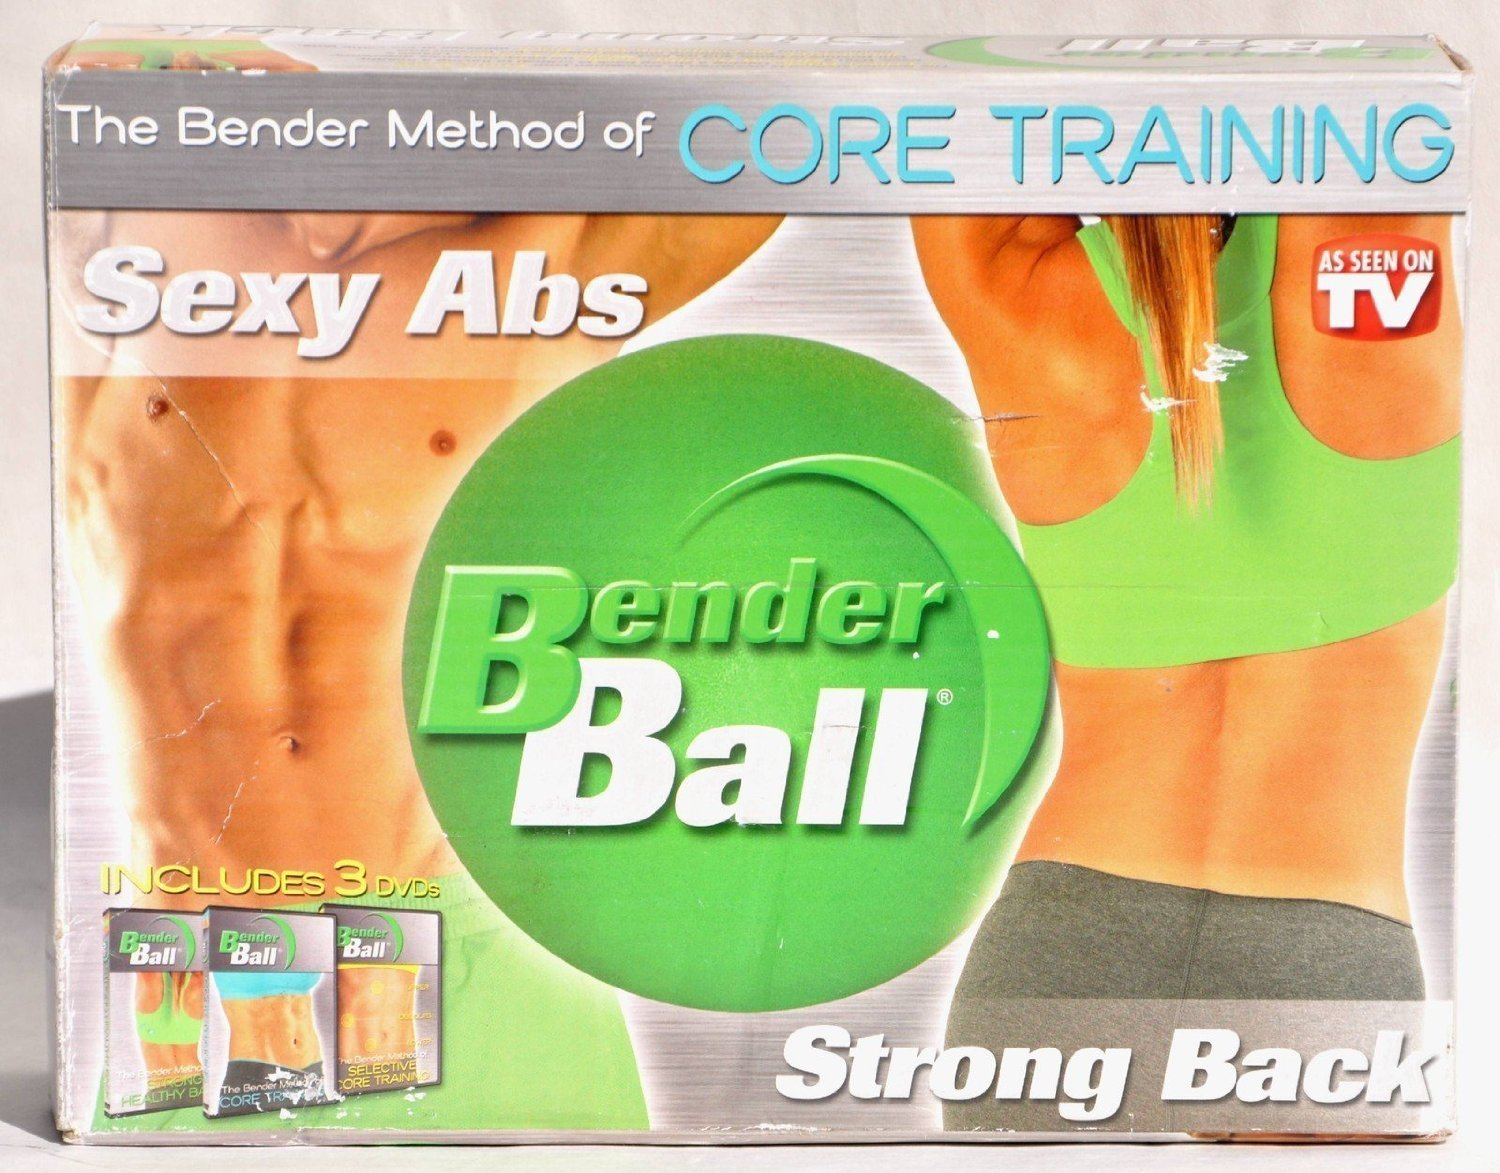 BENDER BALL: The Bender Method of Core Training Set Kit for Sexy Abs & Strong Back As Seen On TV Includes Bender Ball & 3 DVDs